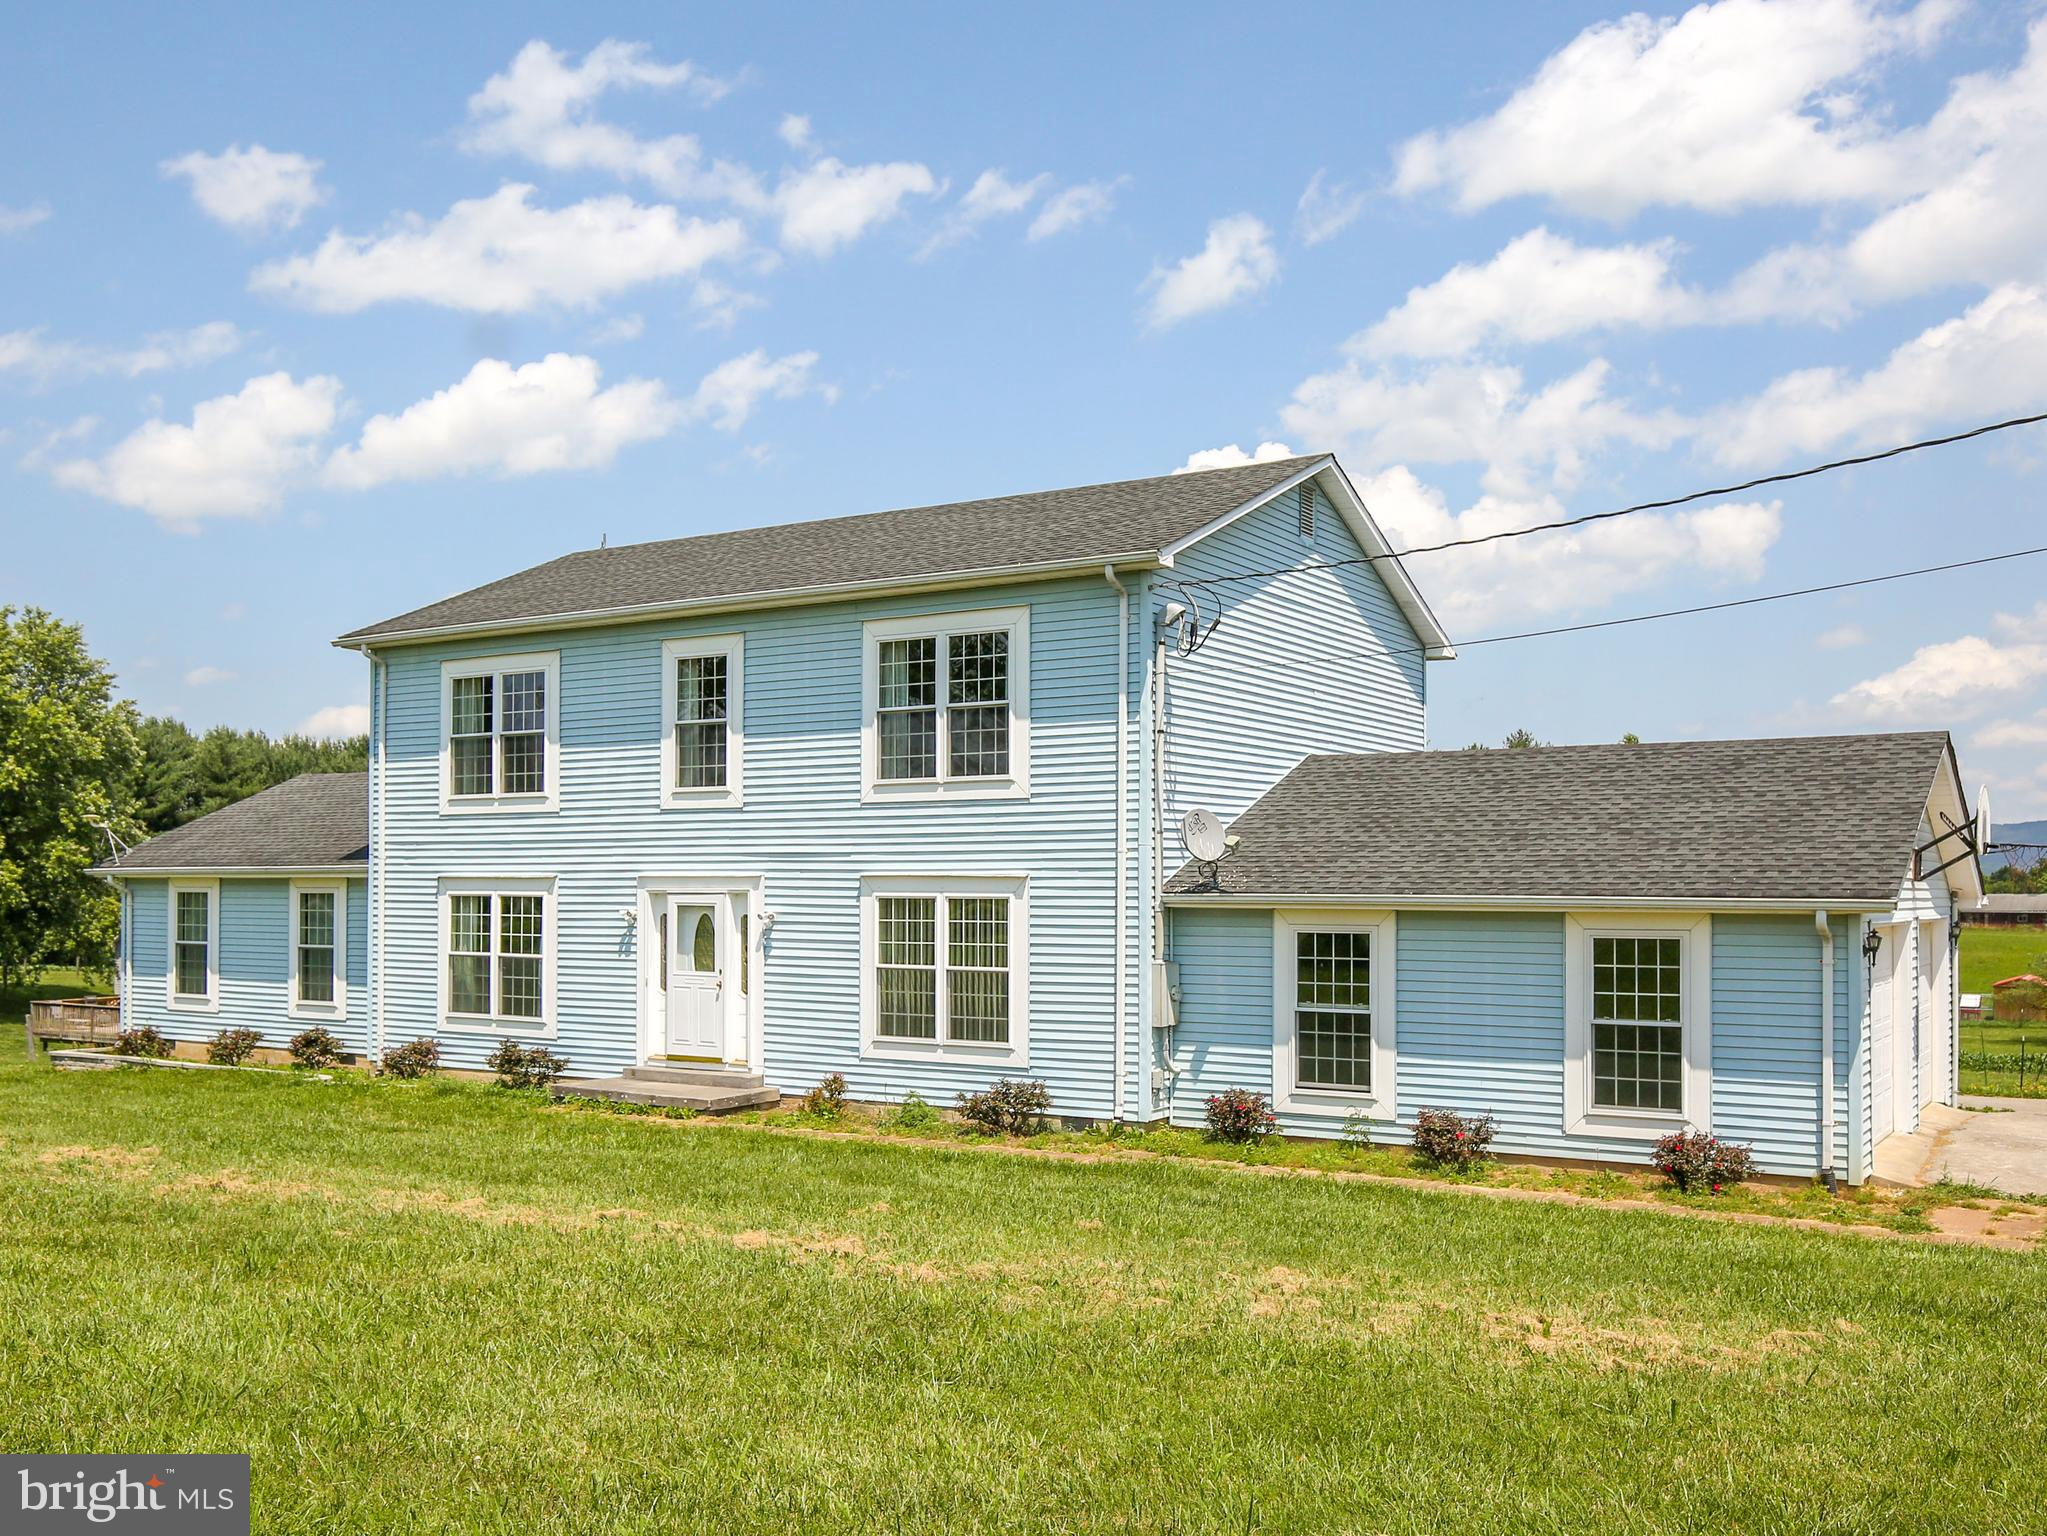 Dreaming of your very own farmette?  This is the one for you! Colonial style home offers 4 bedrooms